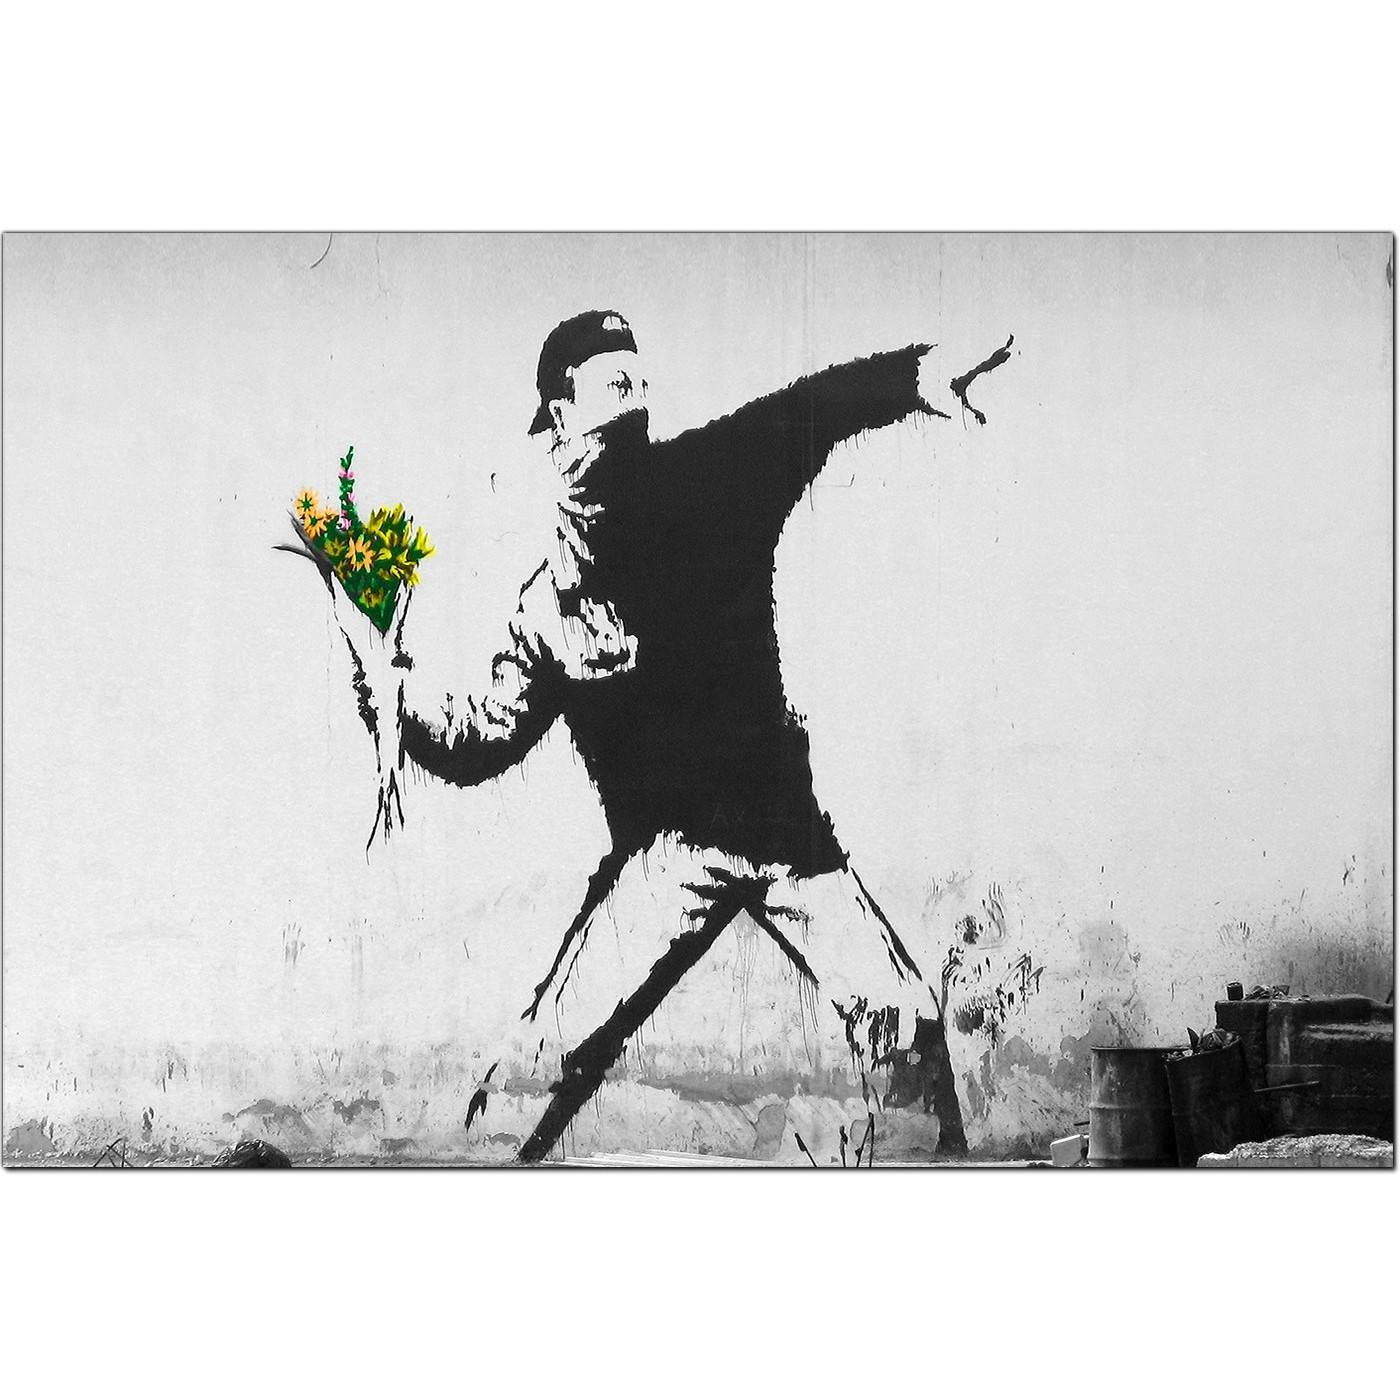 Banksy Canvas Prints – Flower Thrower Intended For Current Banksy Canvas Wall Art (View 3 of 20)